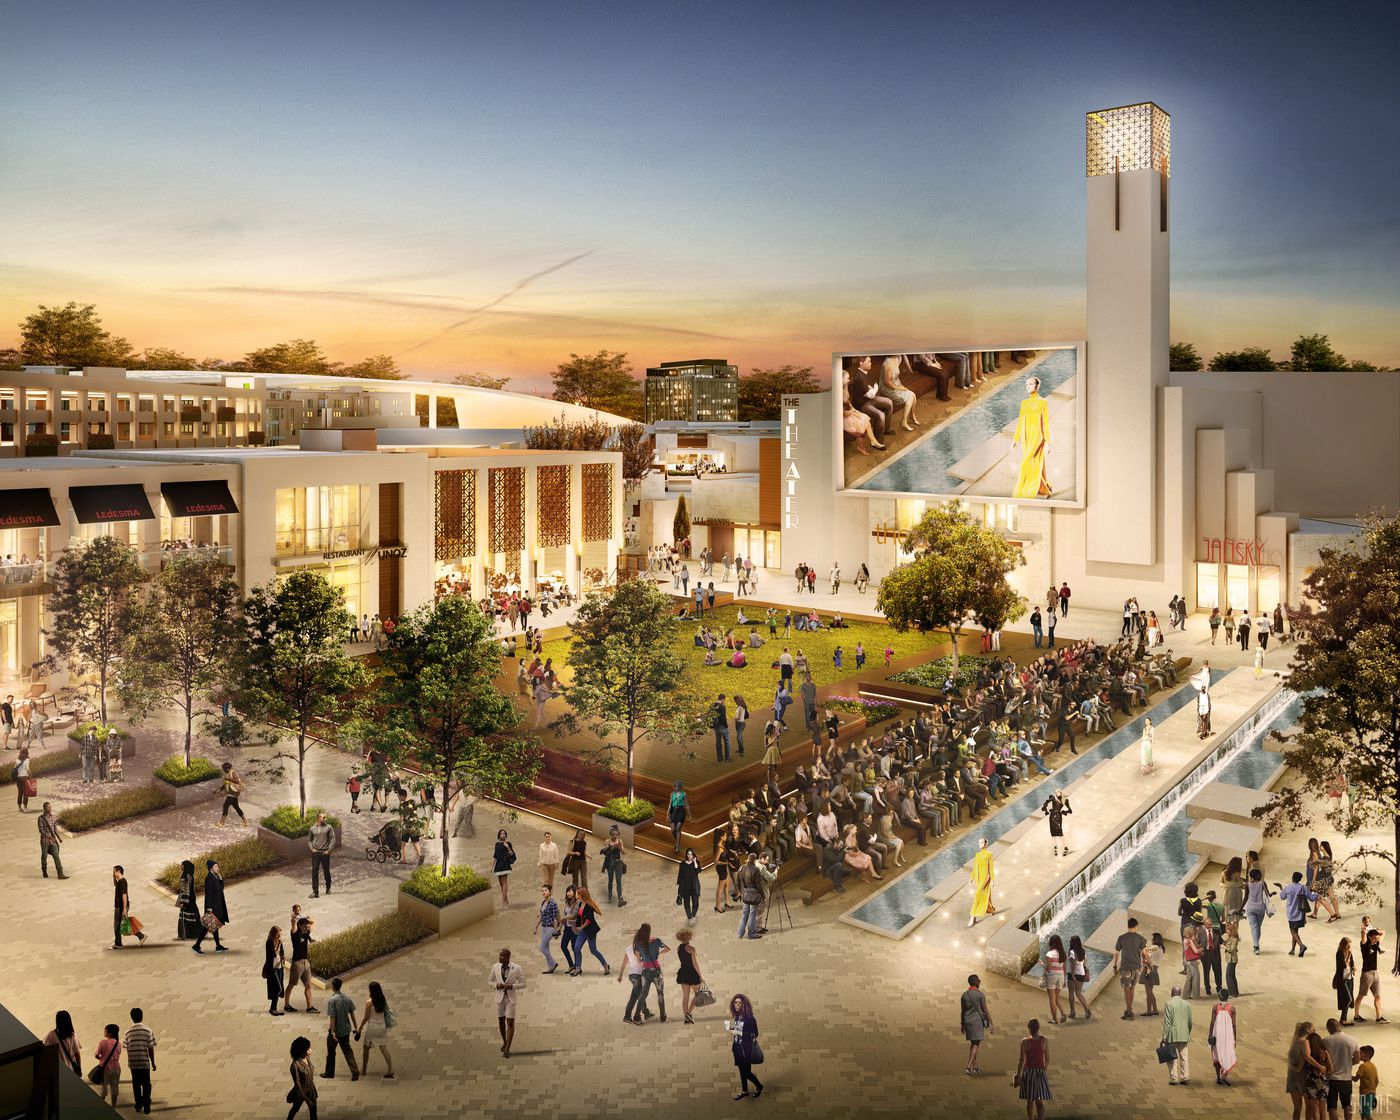 Rendering of the new Los Angeles Rams stadium mixed-use village in Inglewood, California